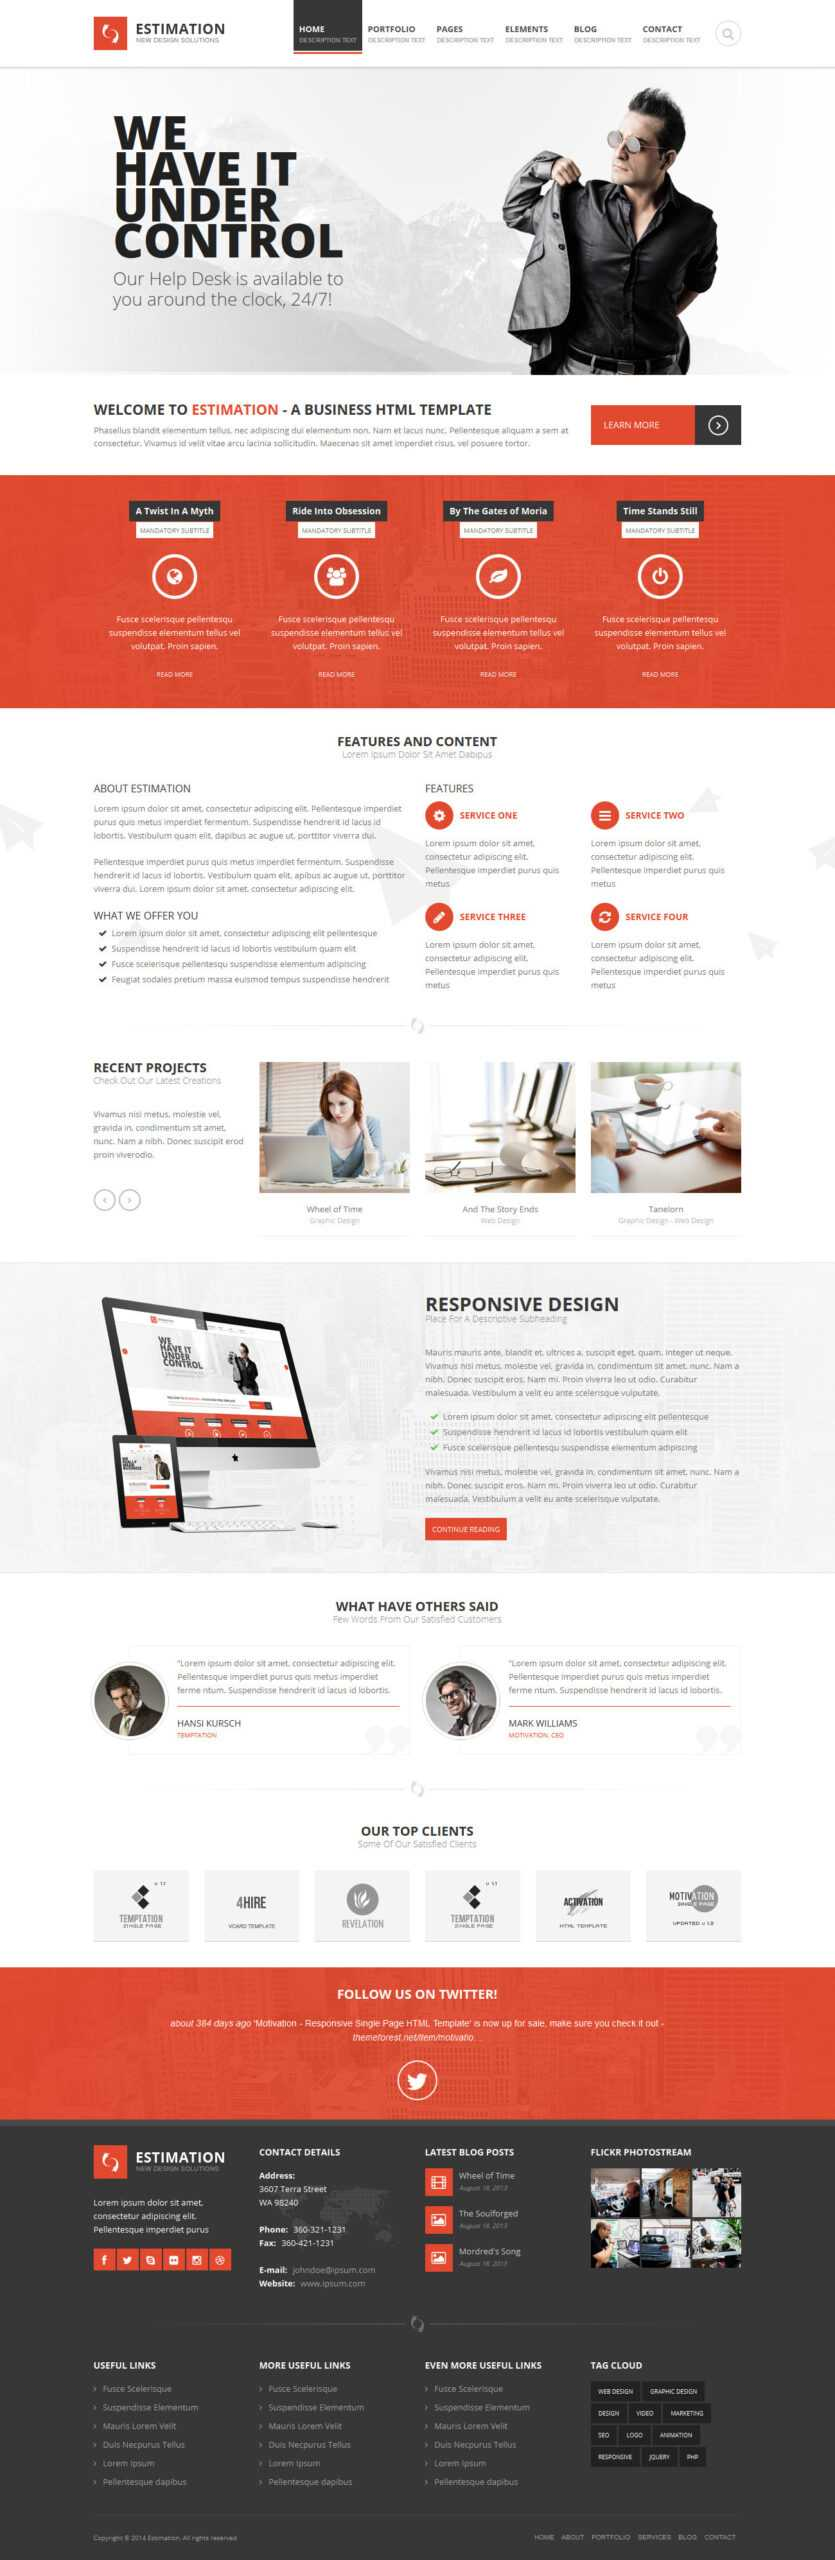 Estimation - Responsive Business Html Template With Regard To Estimation Responsive Business Html Template Free Download